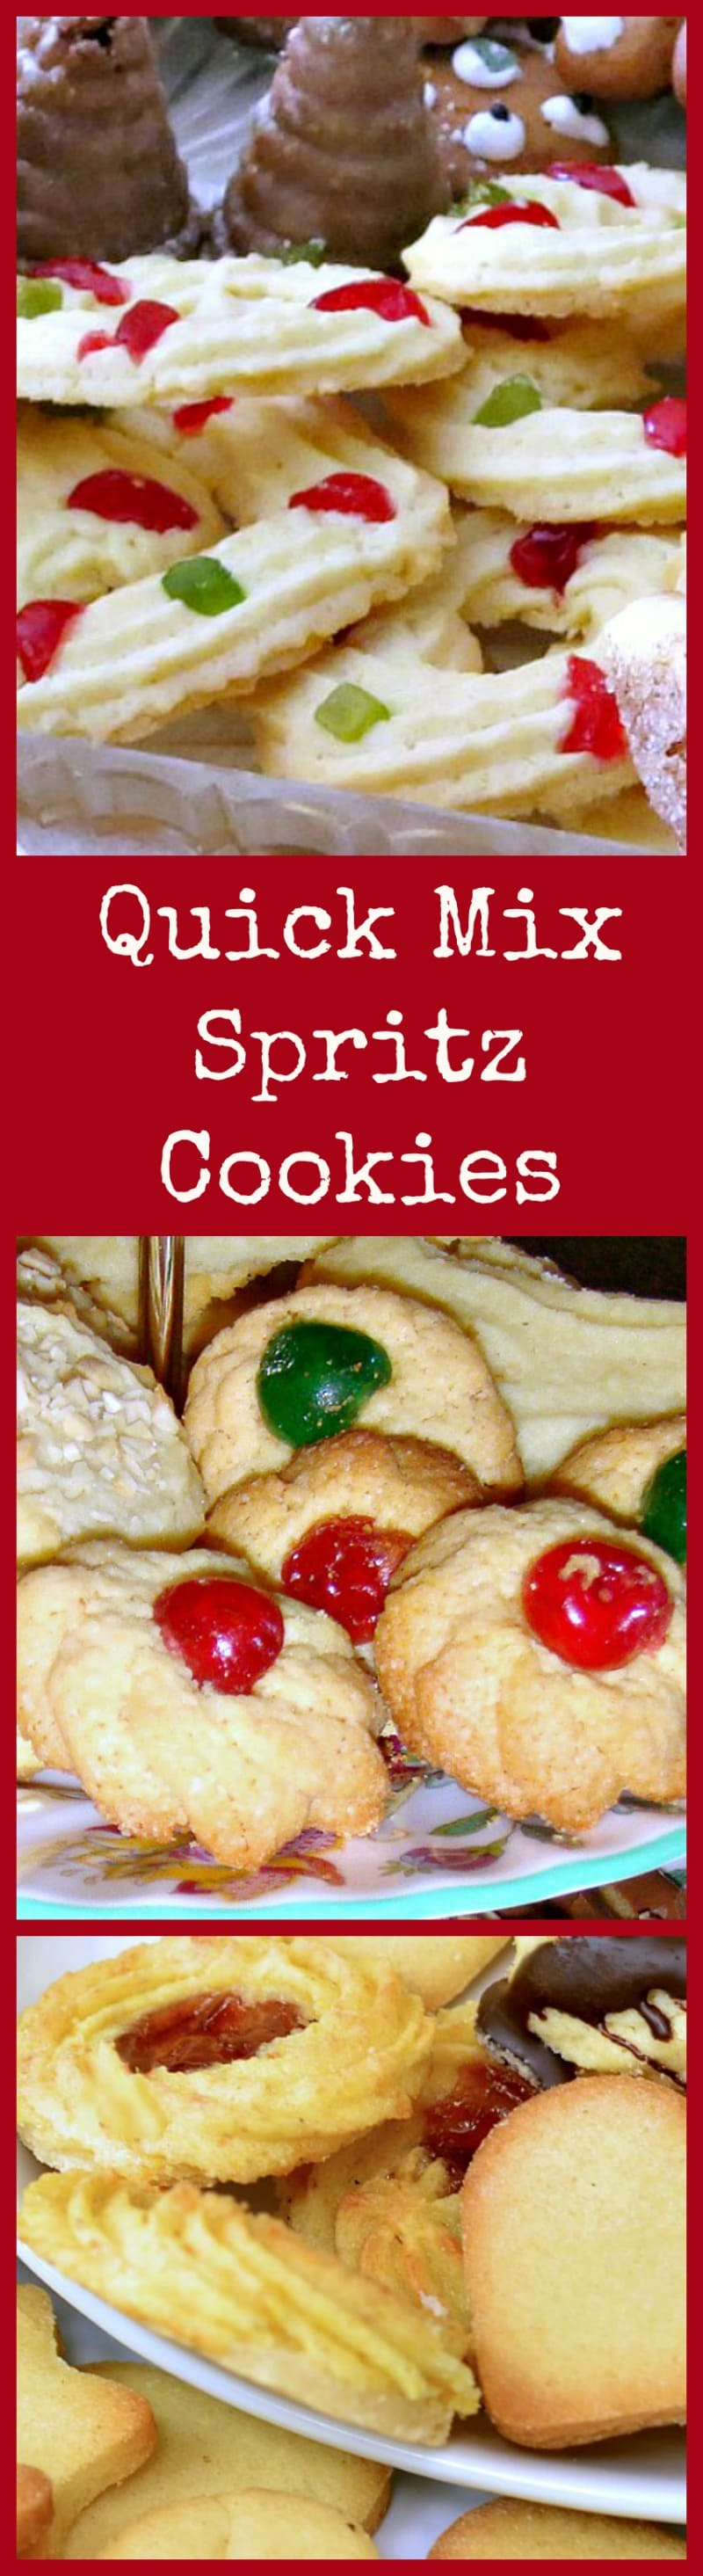 Quick Mix Spritz Cookies. These little cookies have a wonderful vanilla flavor and melt in your mouth. Easy to make! Get creative and make different shapes ready for Christmas! | Lovefoodies.com